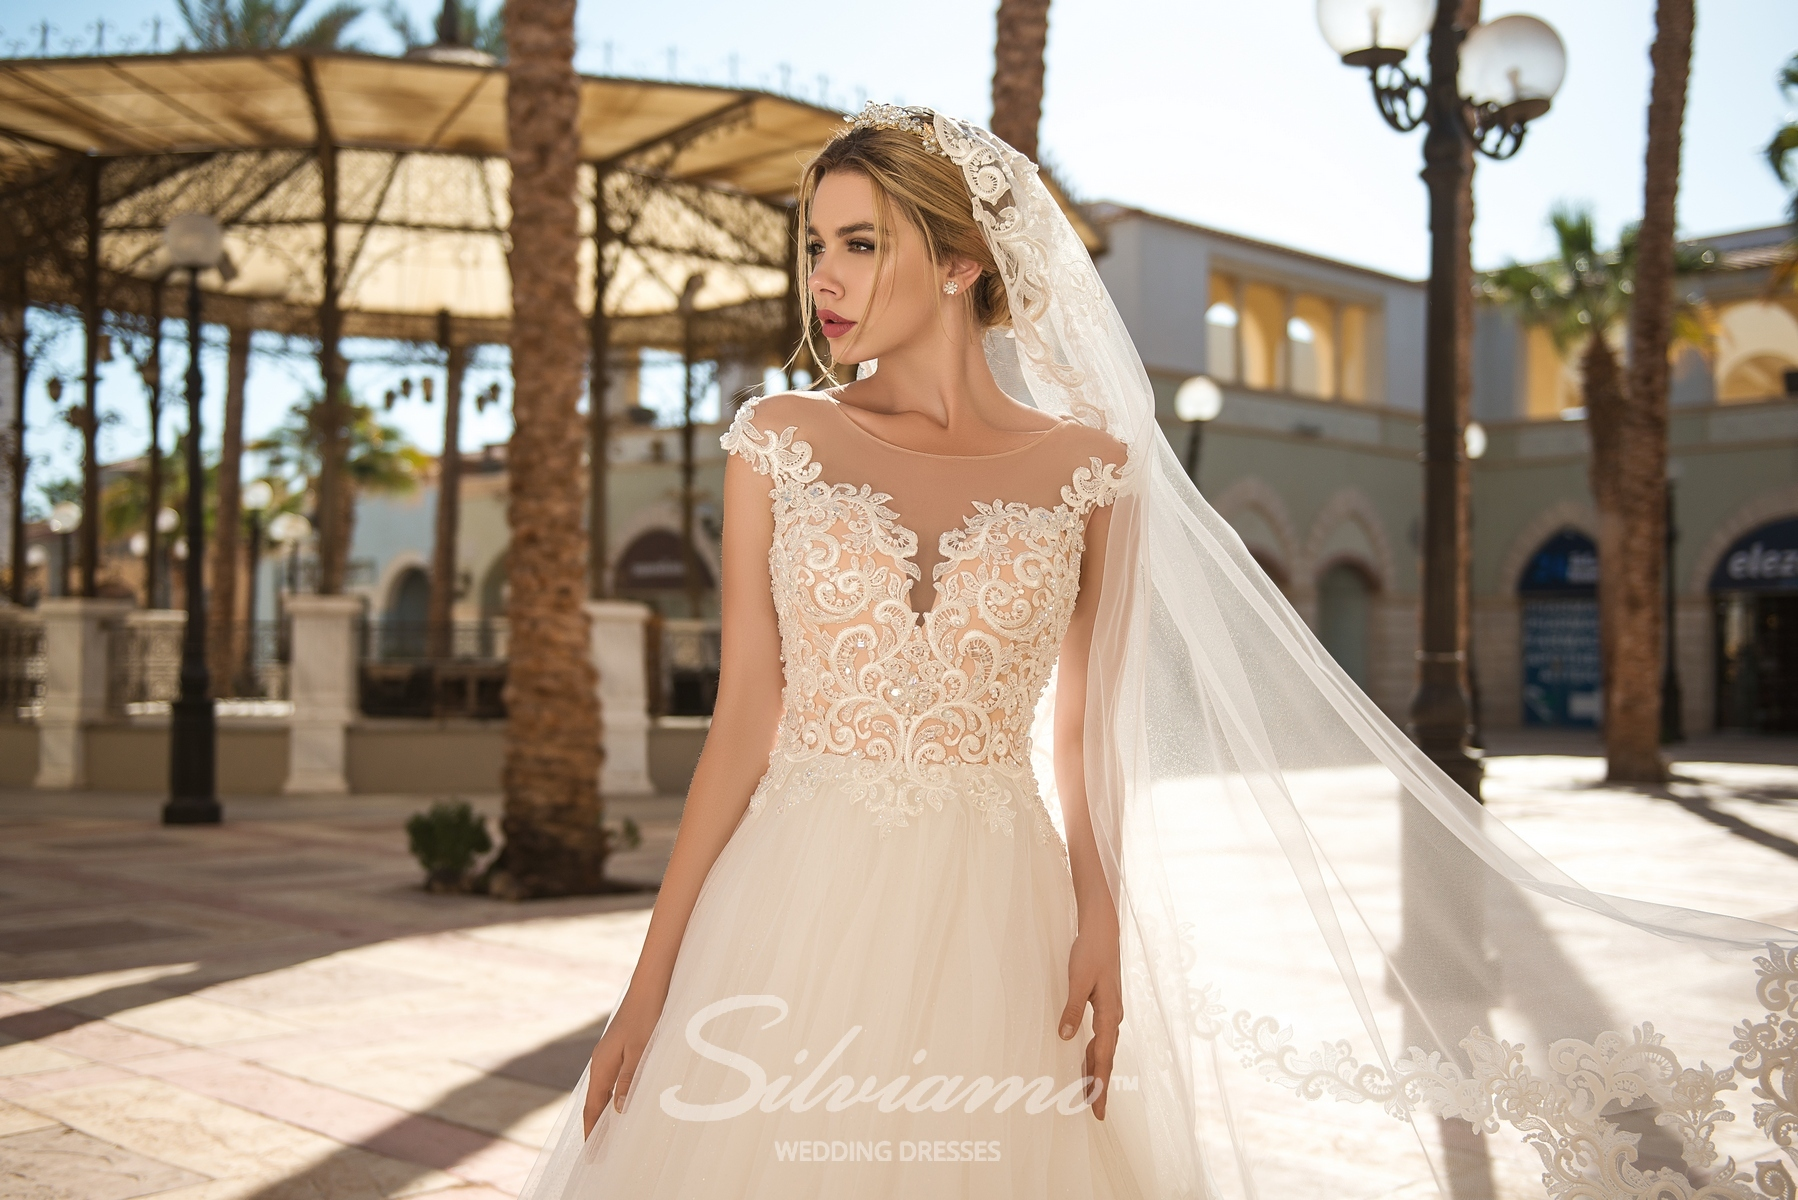 Wedding dress made of tulle and veiling-1